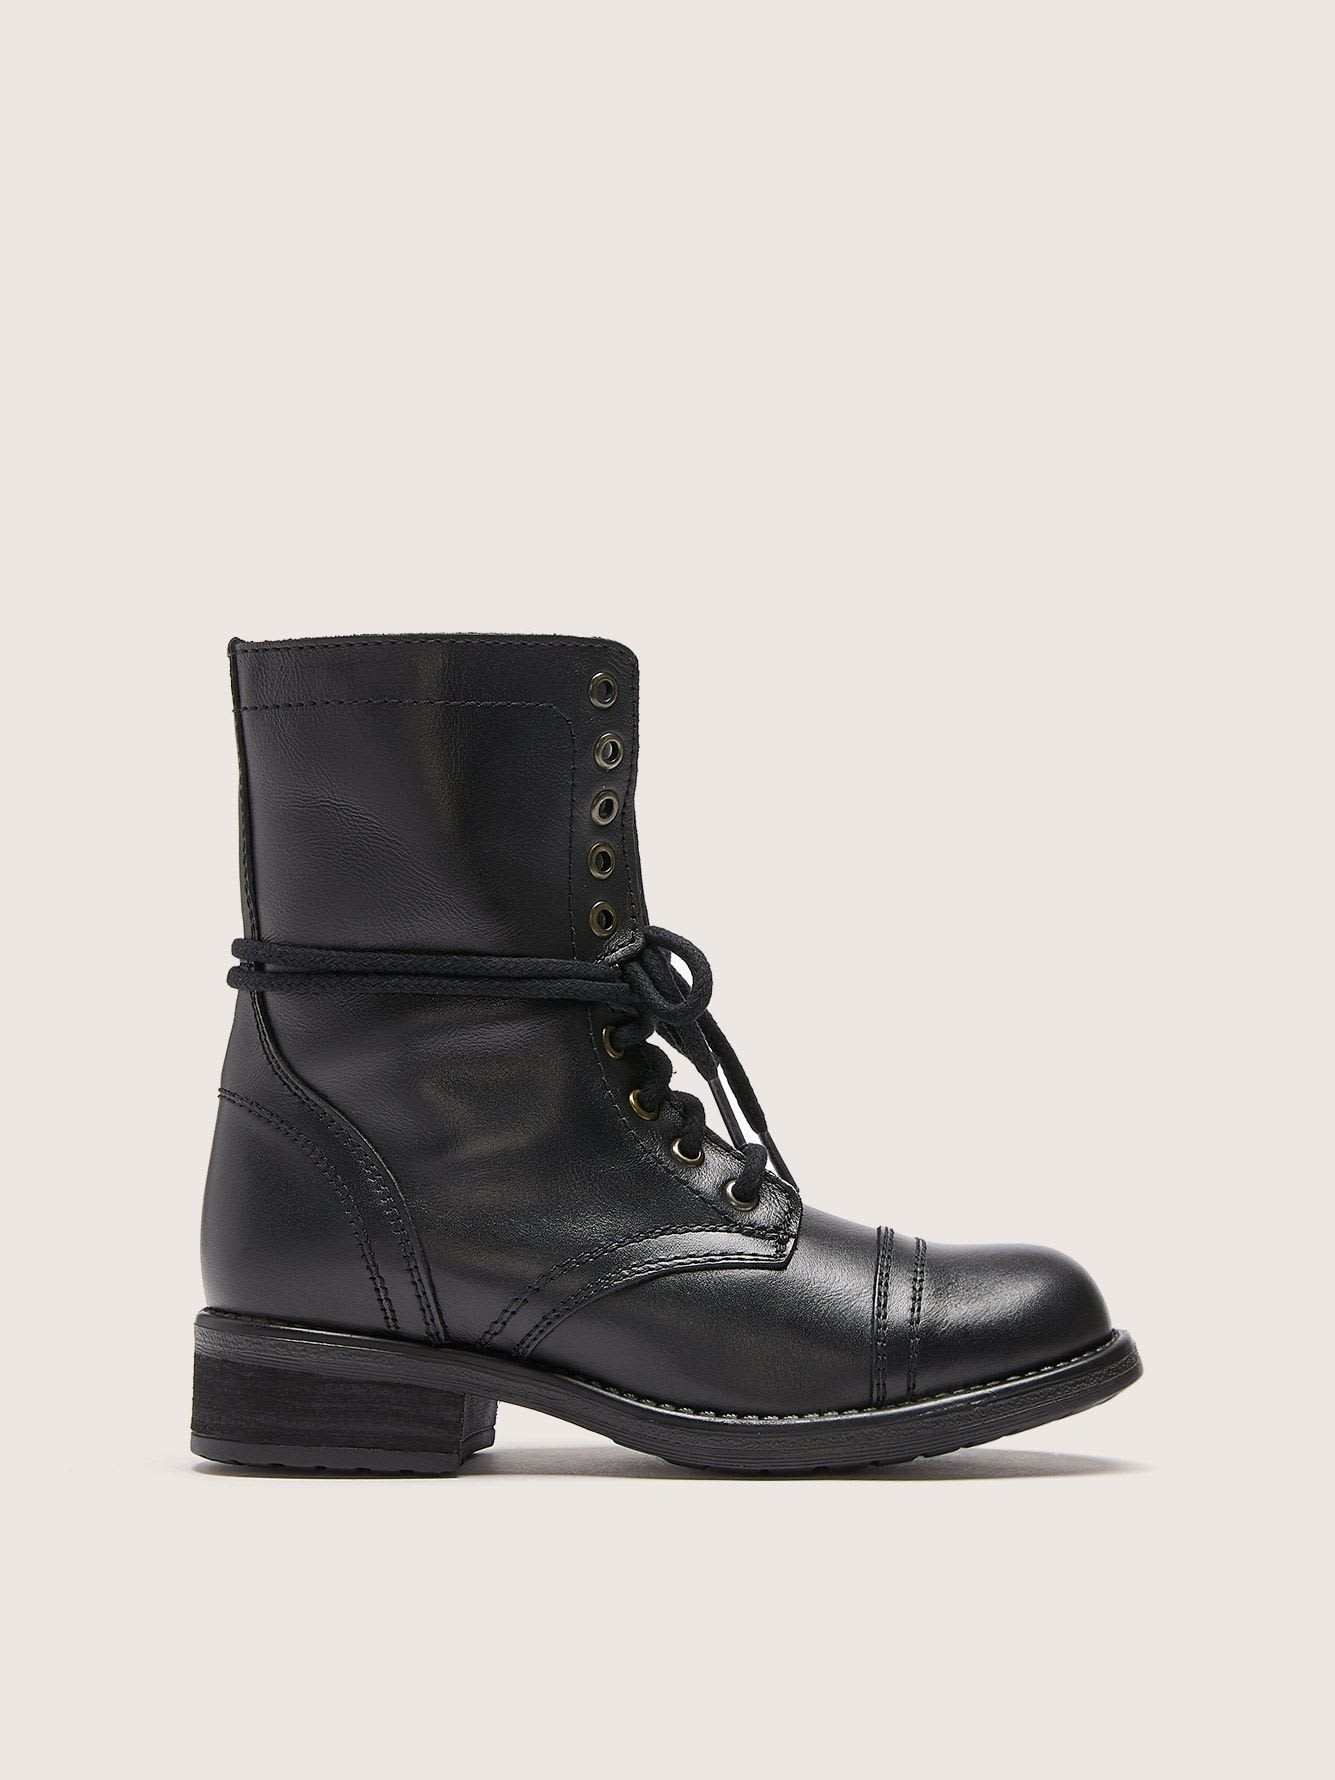 Bottillons Military, pieds larges - Steve Madden